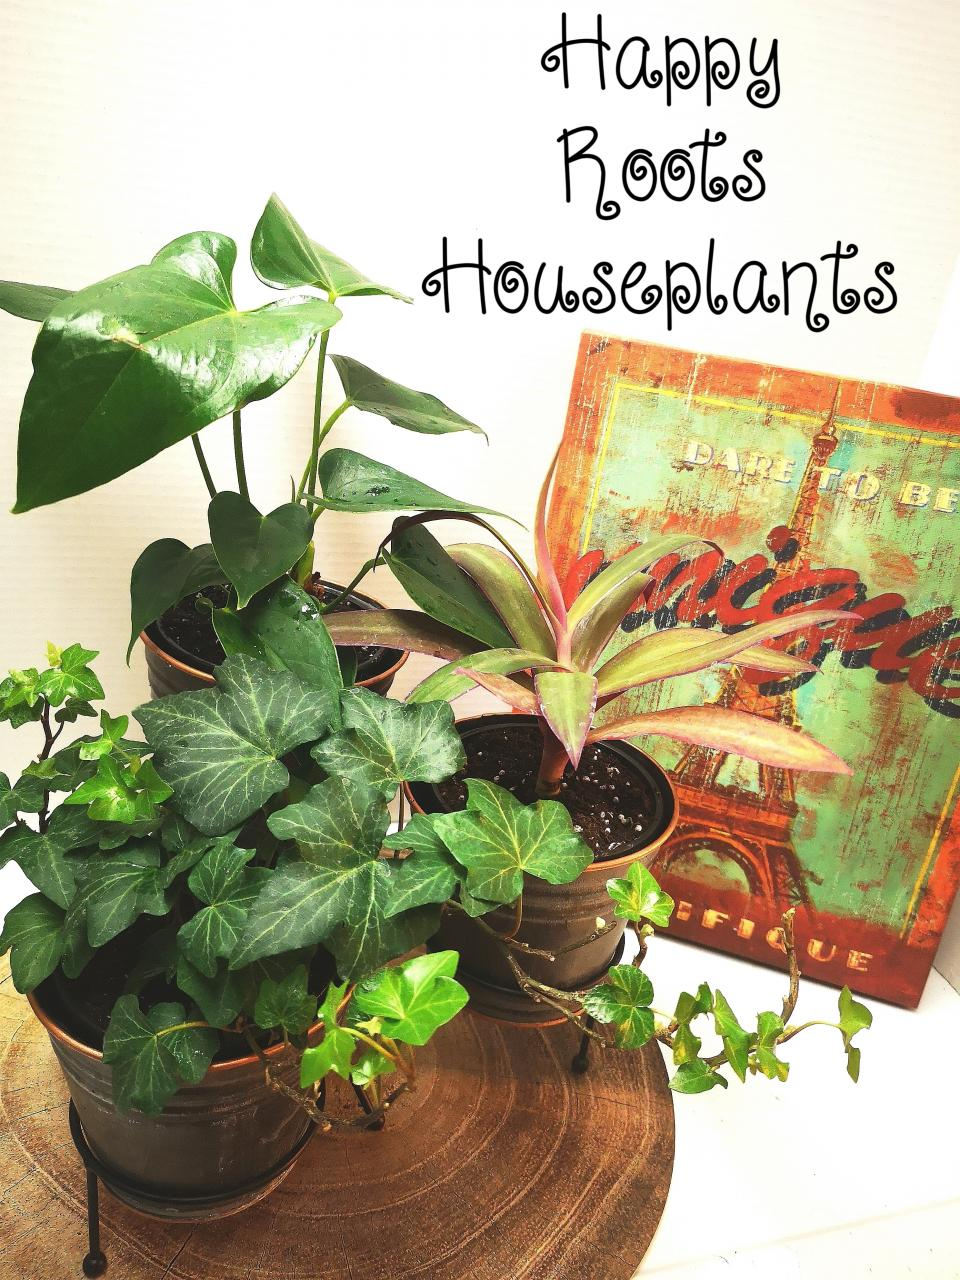 Table top plant stand set - Happy Roots Houseplants - Kingston Indoor Plant Shop